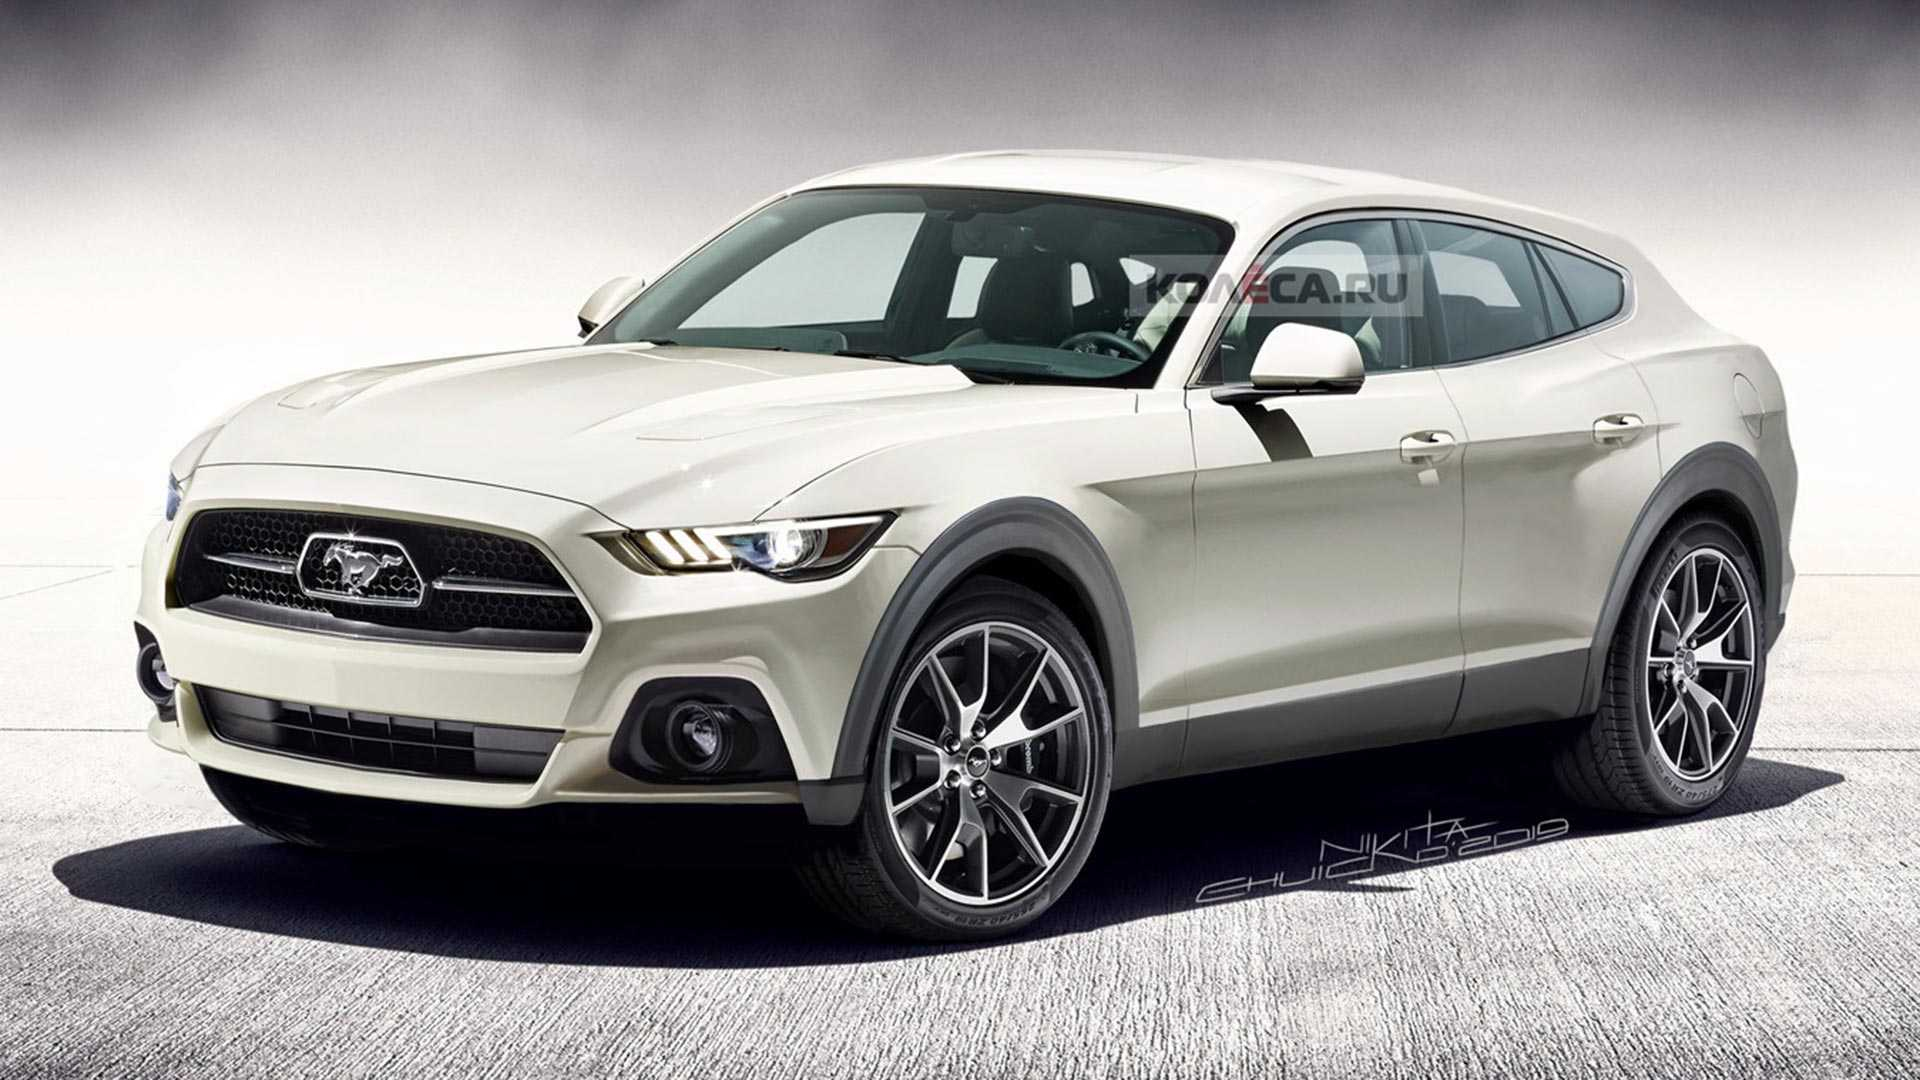 Mustang Sport Wagon >> Ford Mustang Inspired Suv Rendered As Rugged Wagon